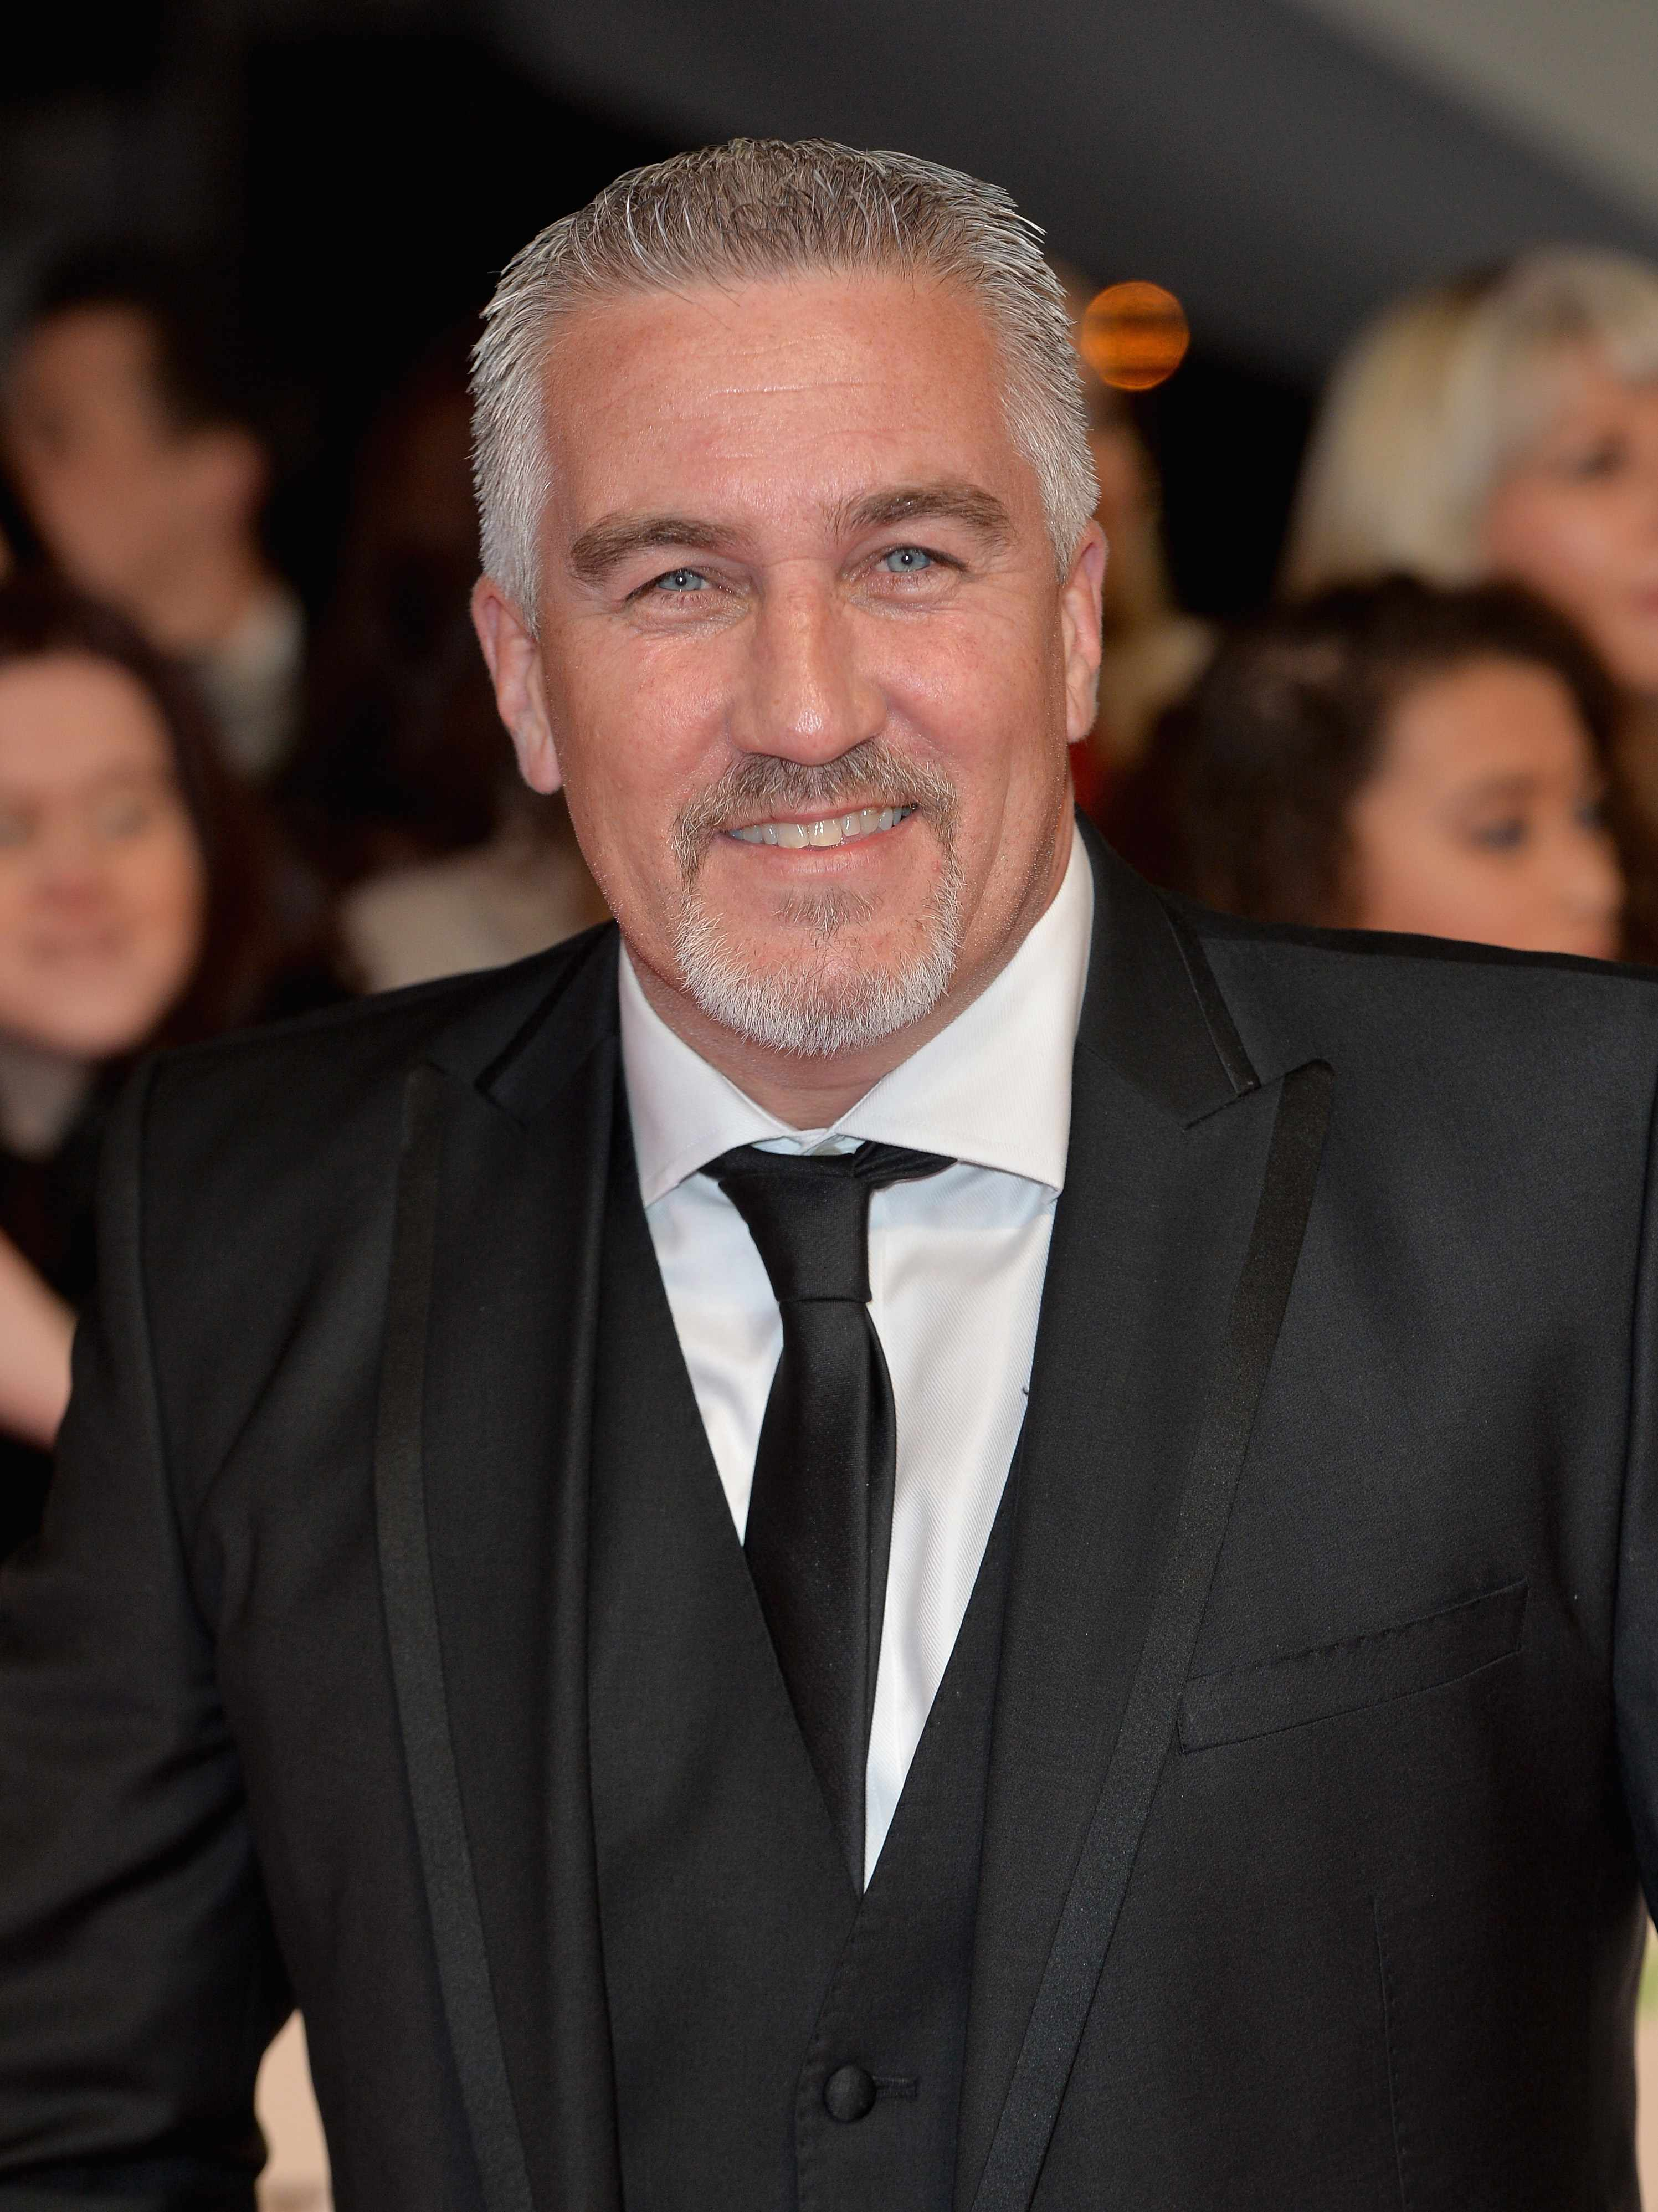 Paul Hollywood Getty Images 505856756